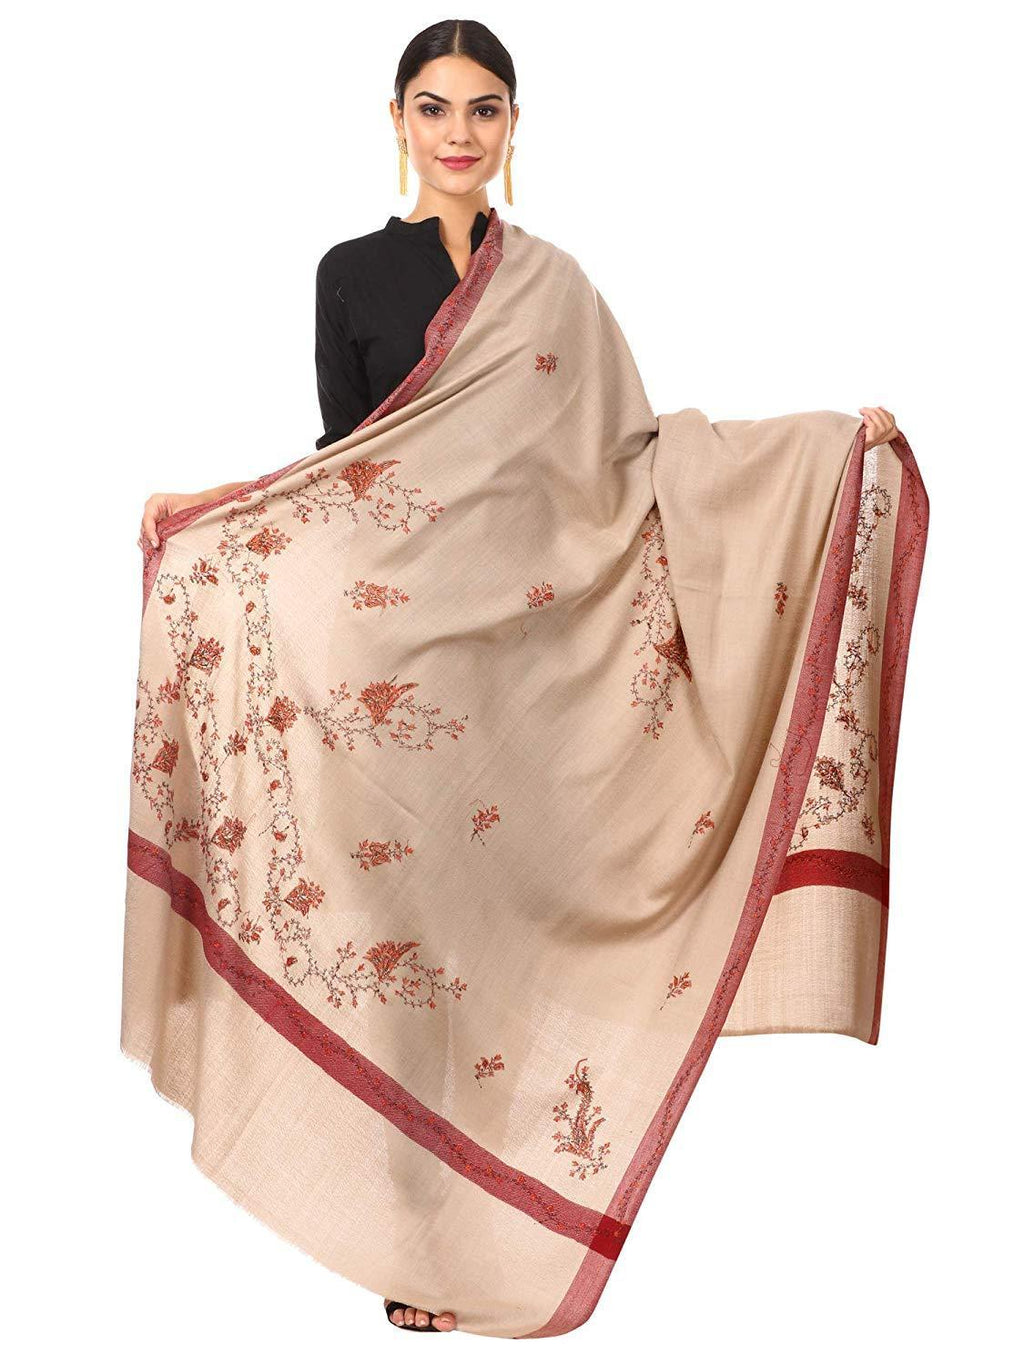 Pashtush Shawl Store shawl Pashtush Women's Wool Shawl with Kashmiri Hand Embroidery, warm and 100% hand-made (Taupe)